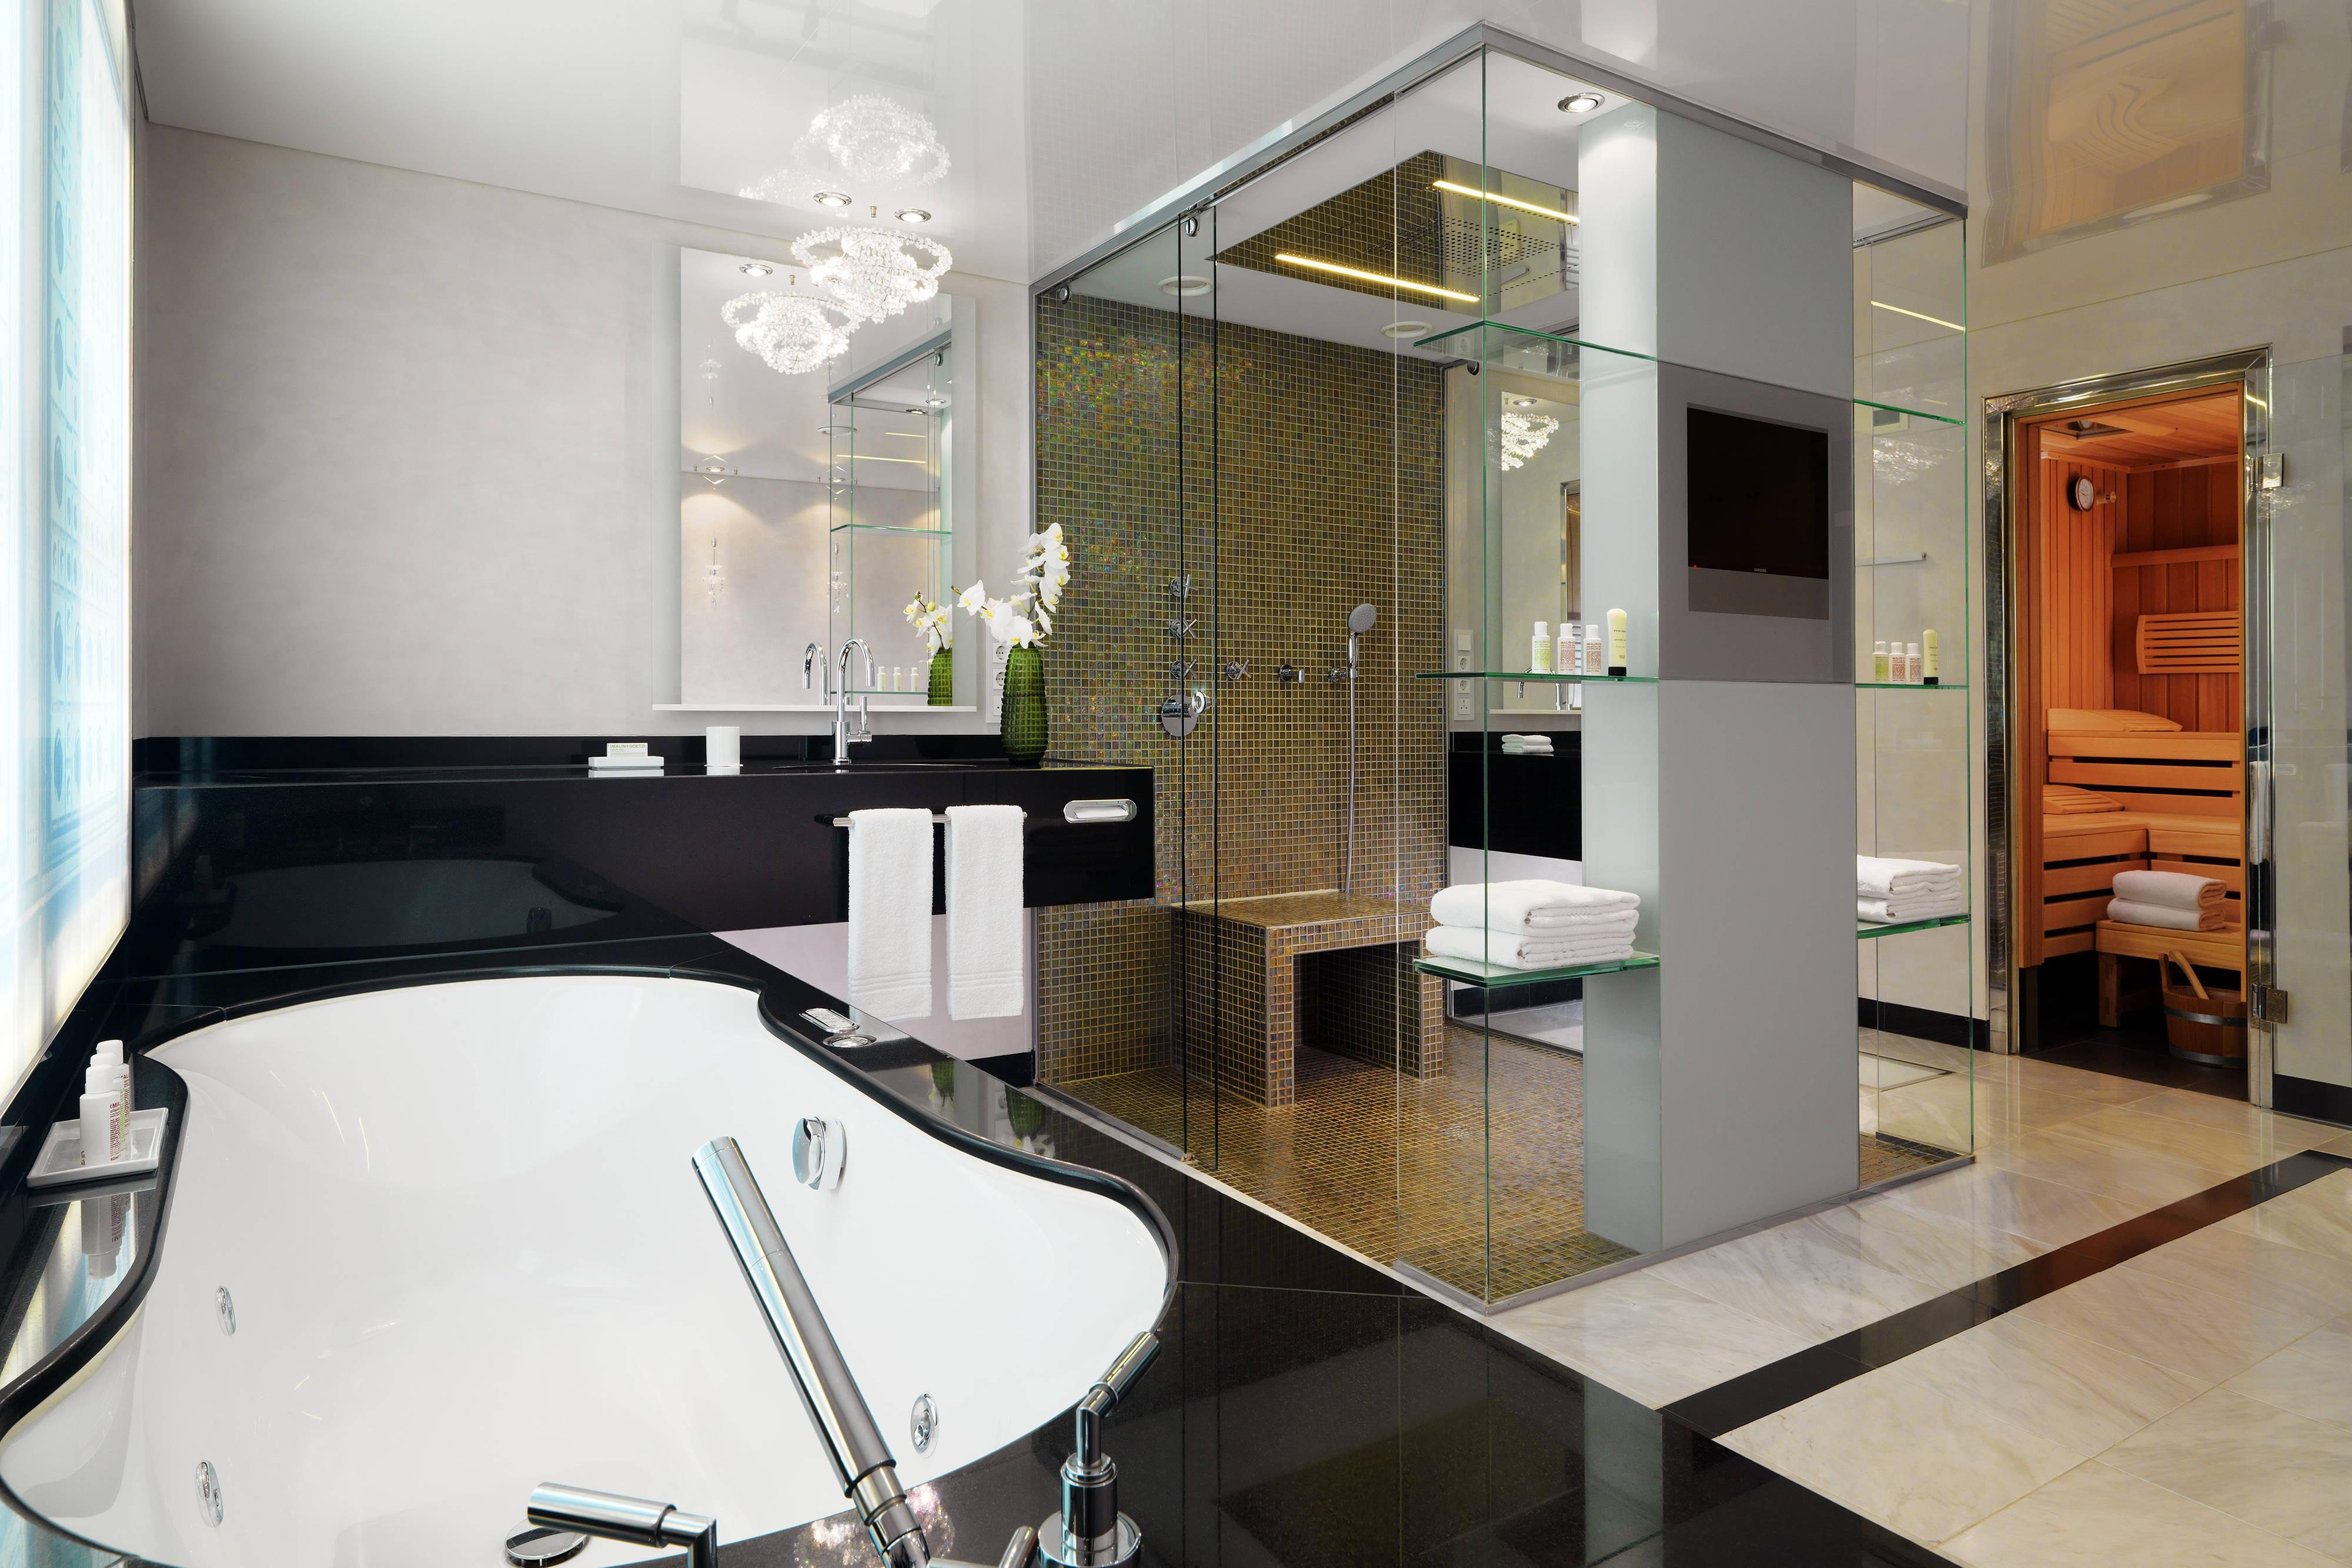 Spacious spa bathroom at the Grand Spa Suite in Berlin